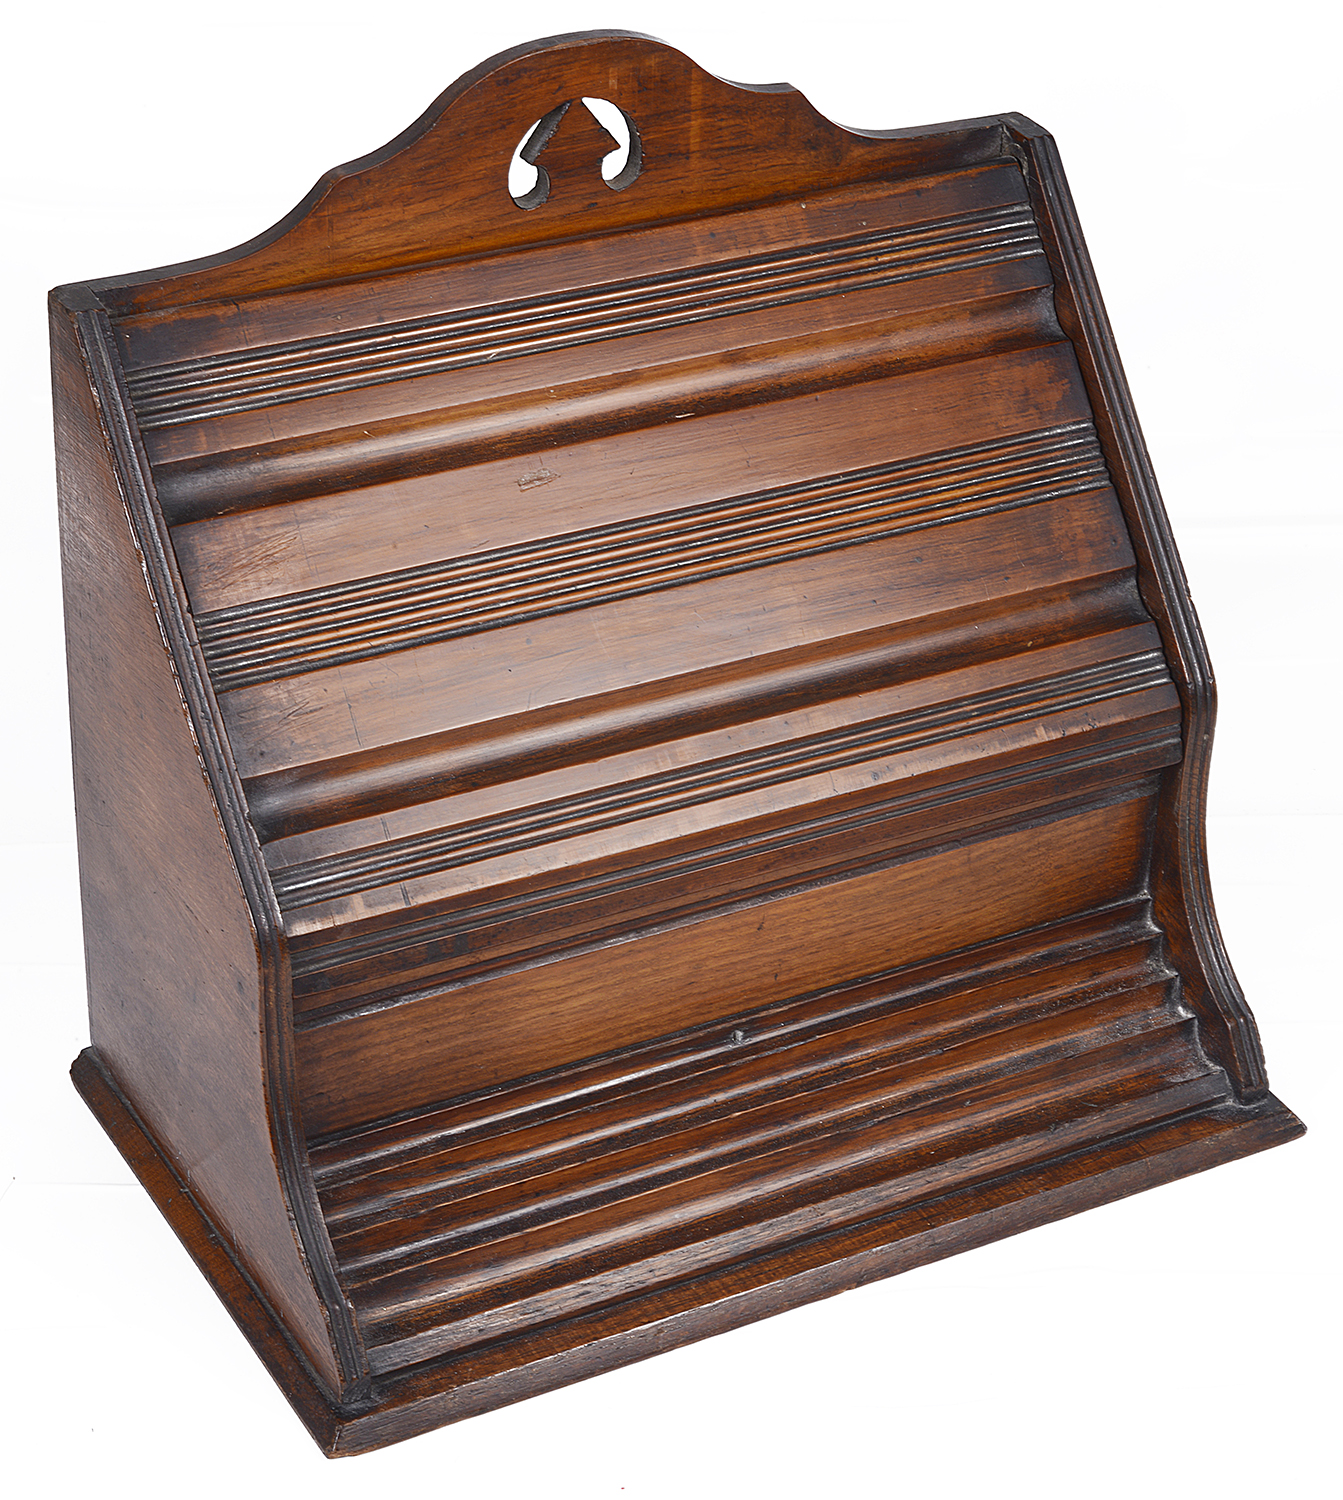 Lot 25 - A mahogany upright letter holder, early 20th century